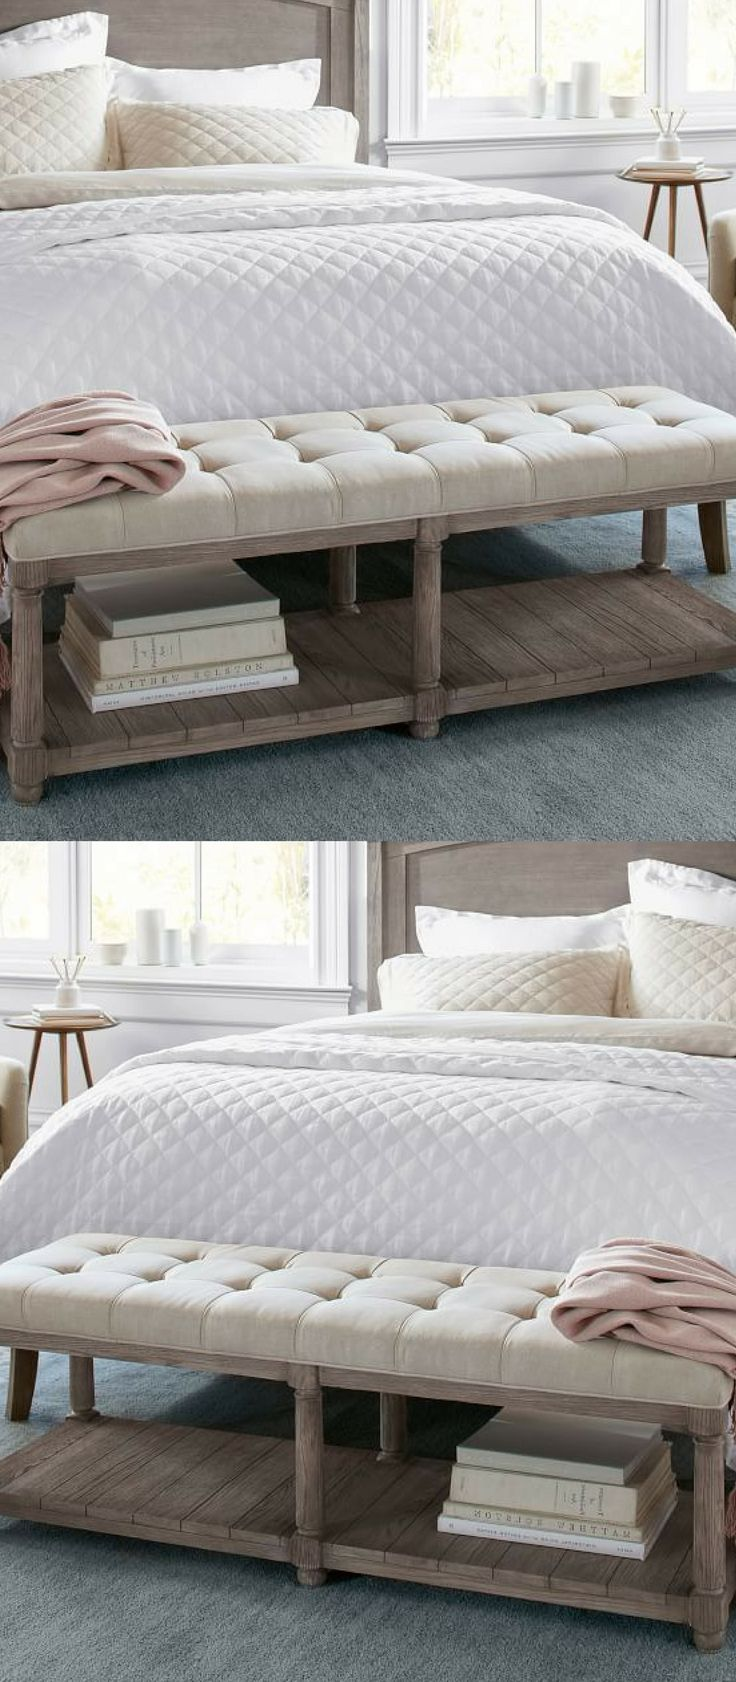 This kind of bench is basically a classic!!! I need it for my bedroom!!! This plush bench would beautifully accent any bedroom with a farmhouse, rustic, or Scandinavian influence. It would even look great in the living room as a place to sit and put your shoes on! #bedroomideas #bedroomdecor #livingroomideas #livingroomdecor #ad #farmhousedecor #rustichomedecor #homedecorideas